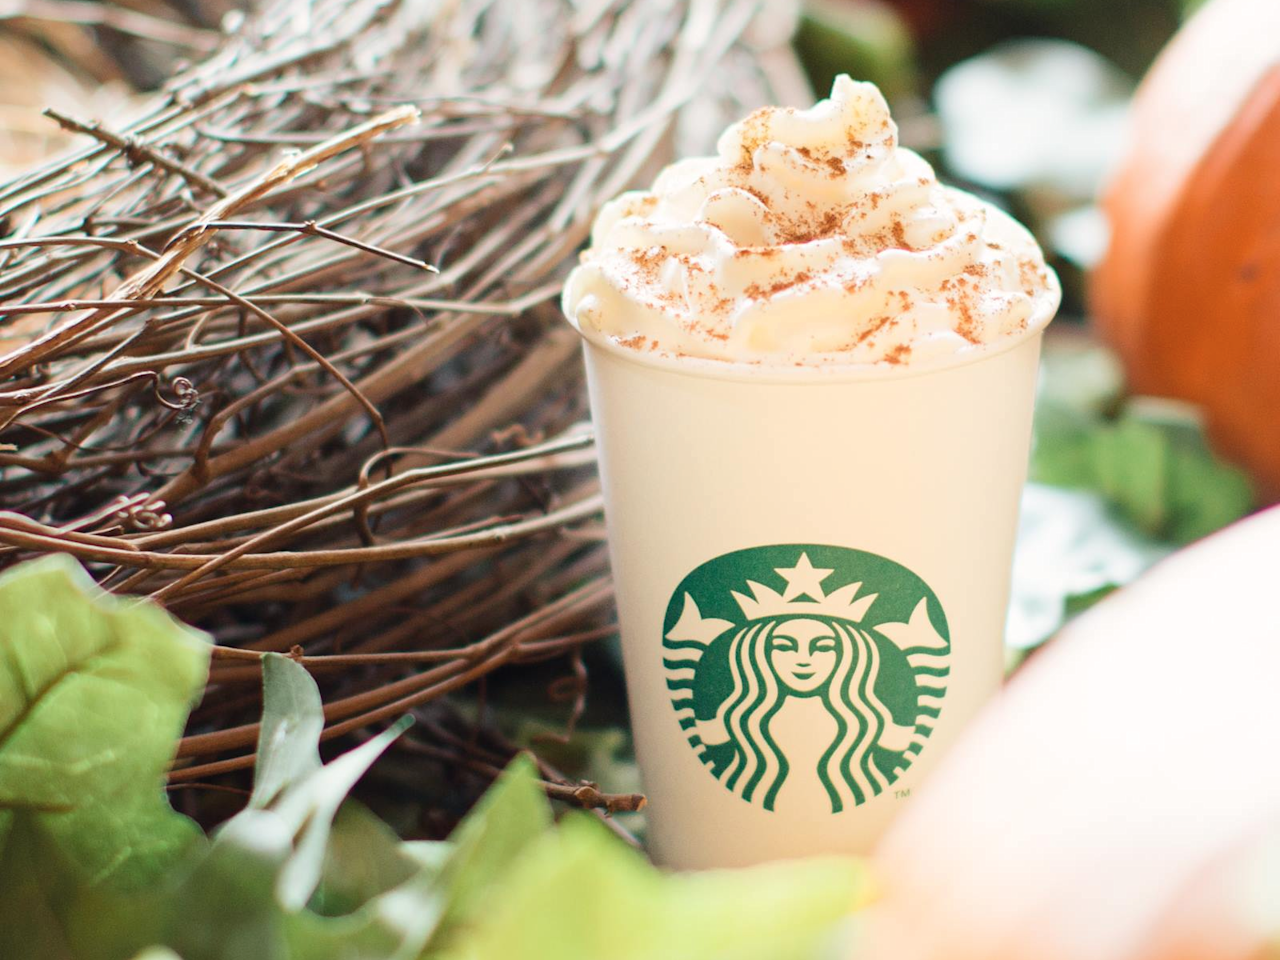 <p>The coffee that launched a million products, this is the original Starbucks Pumpkin Spice Latte.<br />(Starbucks) </p>